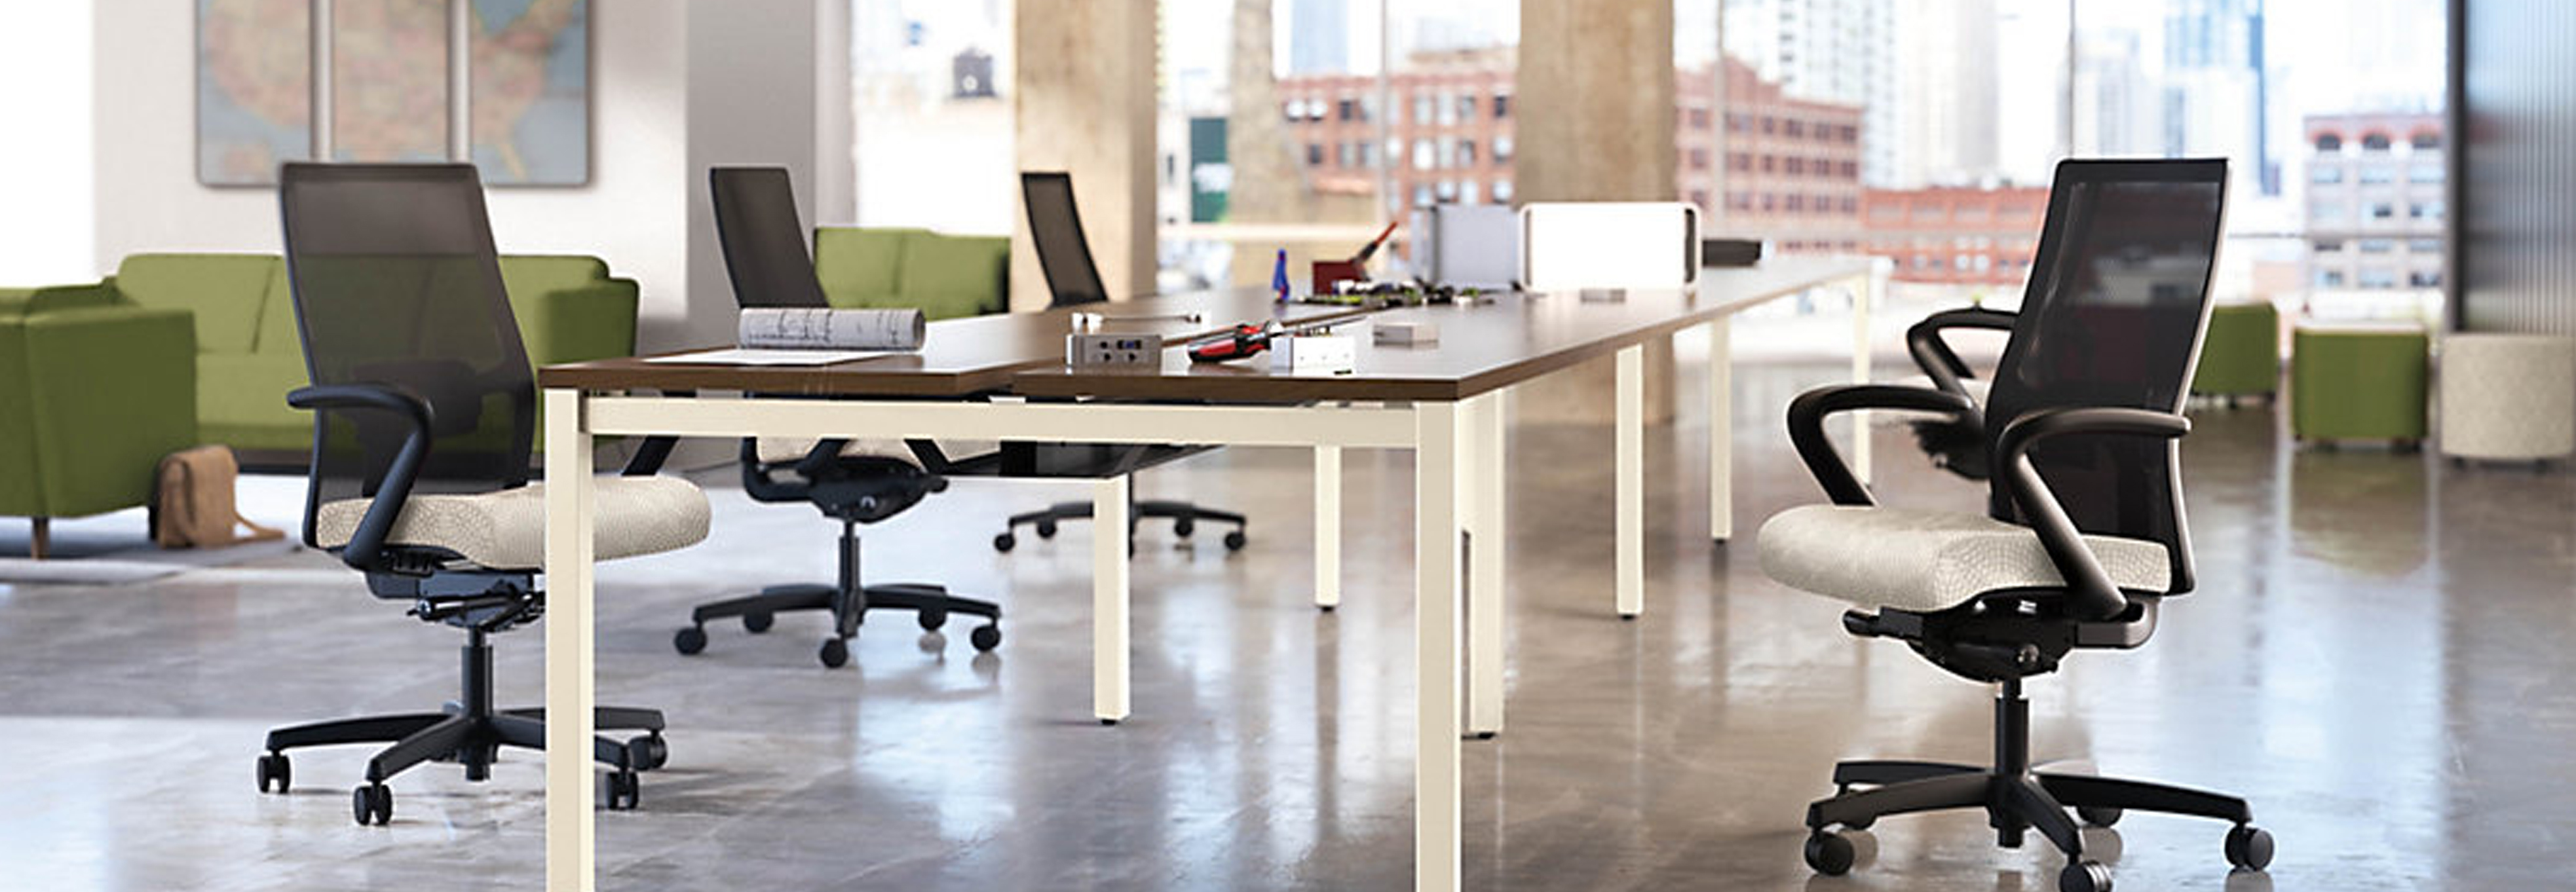 finance office furniture austin